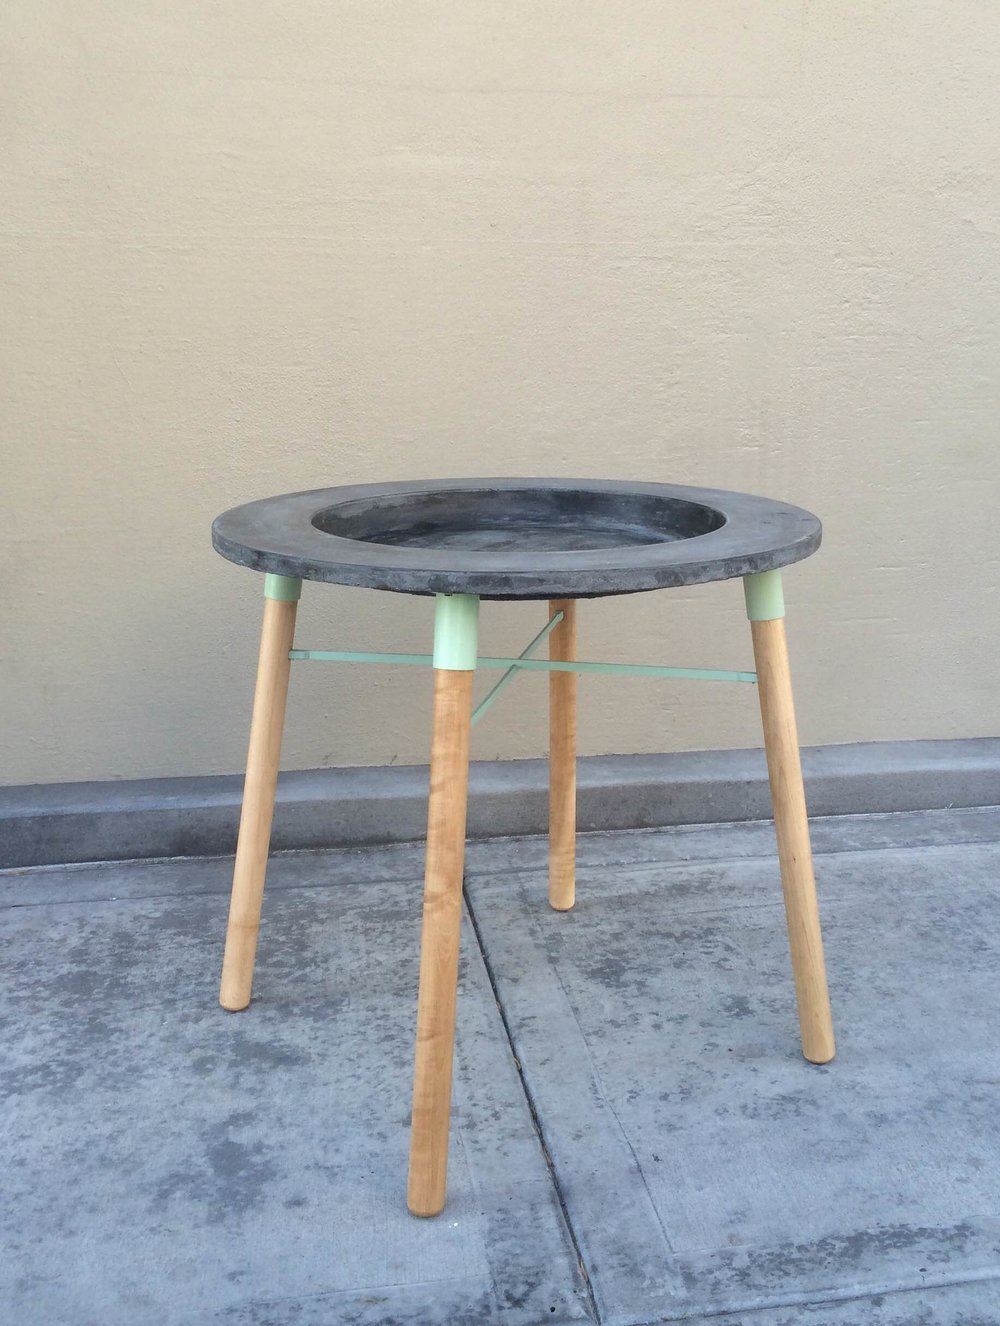 Concrete, aluminum and maple table.